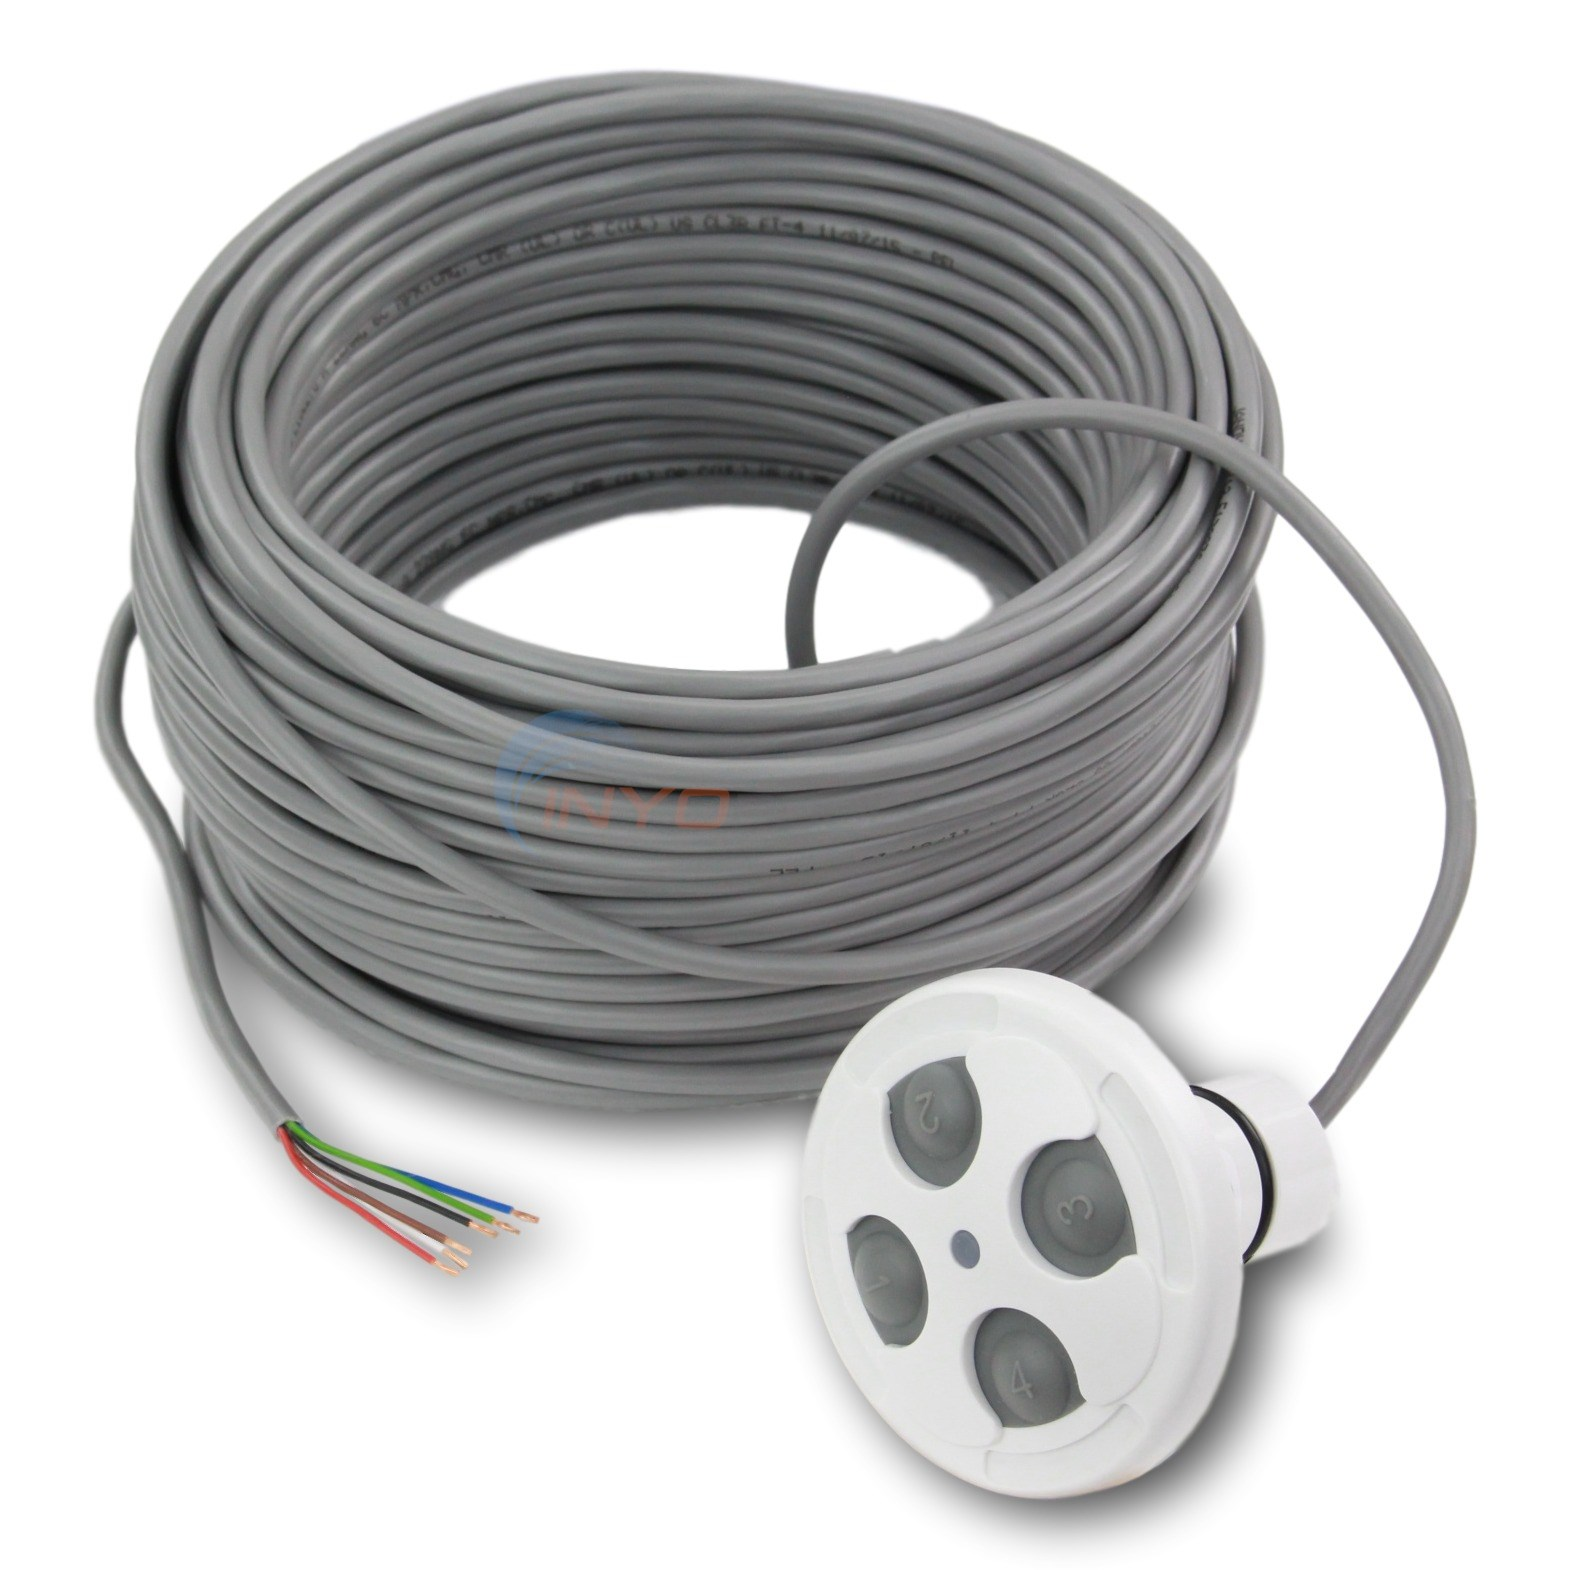 jandy 7441 04?format=jpg&scale=both&anchor=middlecenter&autorotate=true&mode=pad&width=650&height=650 jandy 4 function spa side remote white 100 ft 7441 inyopools com Wiring Harness Connector Plugs at panicattacktreatment.co